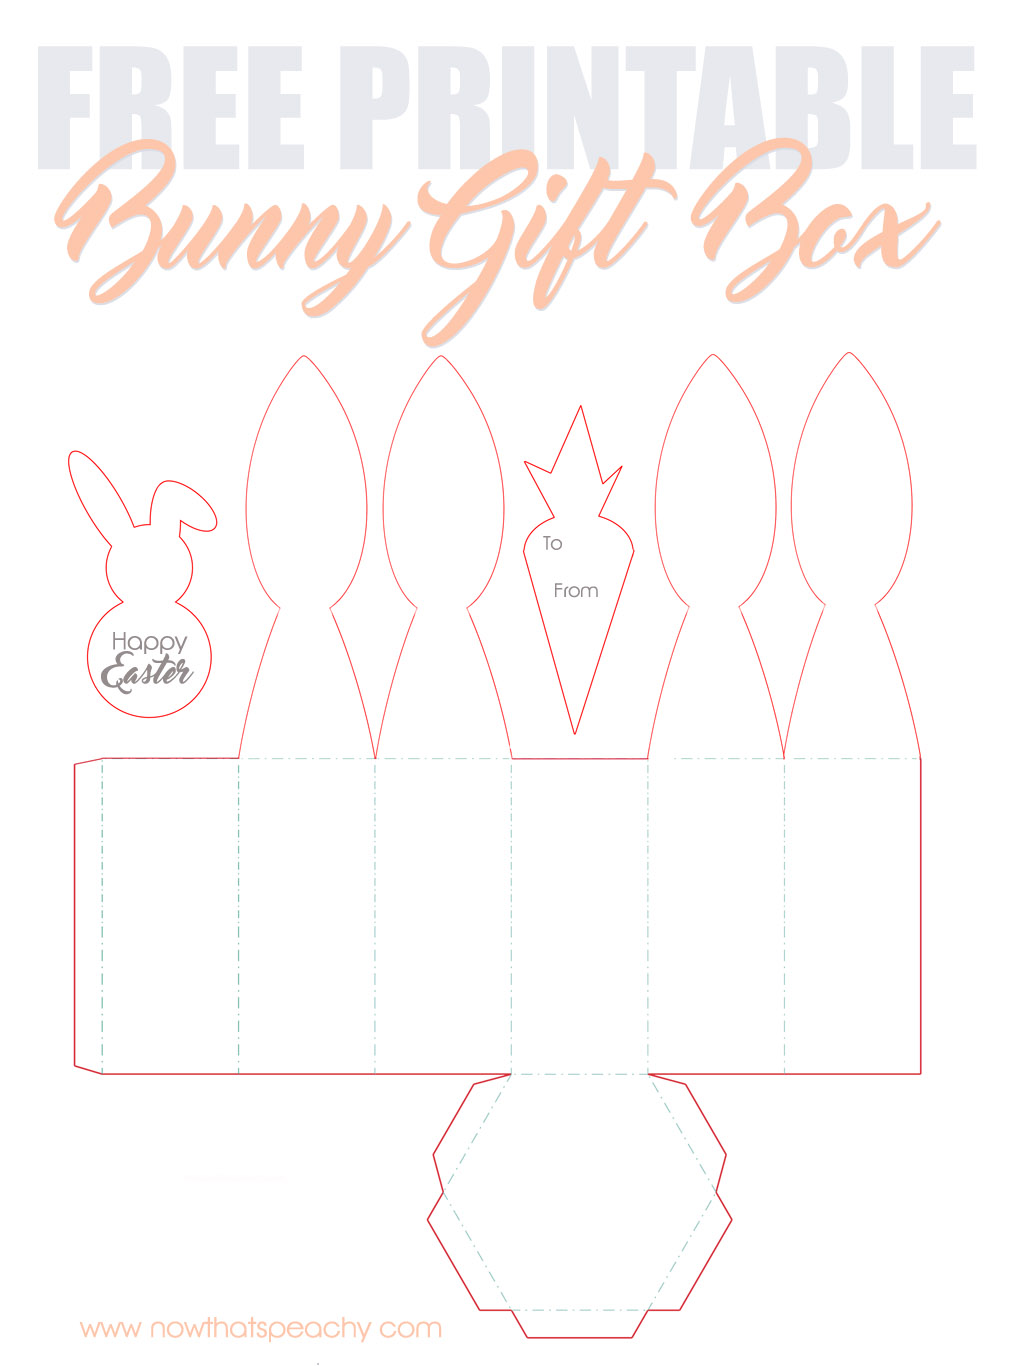 free bunny ears gift box printable for easter now thats peachy